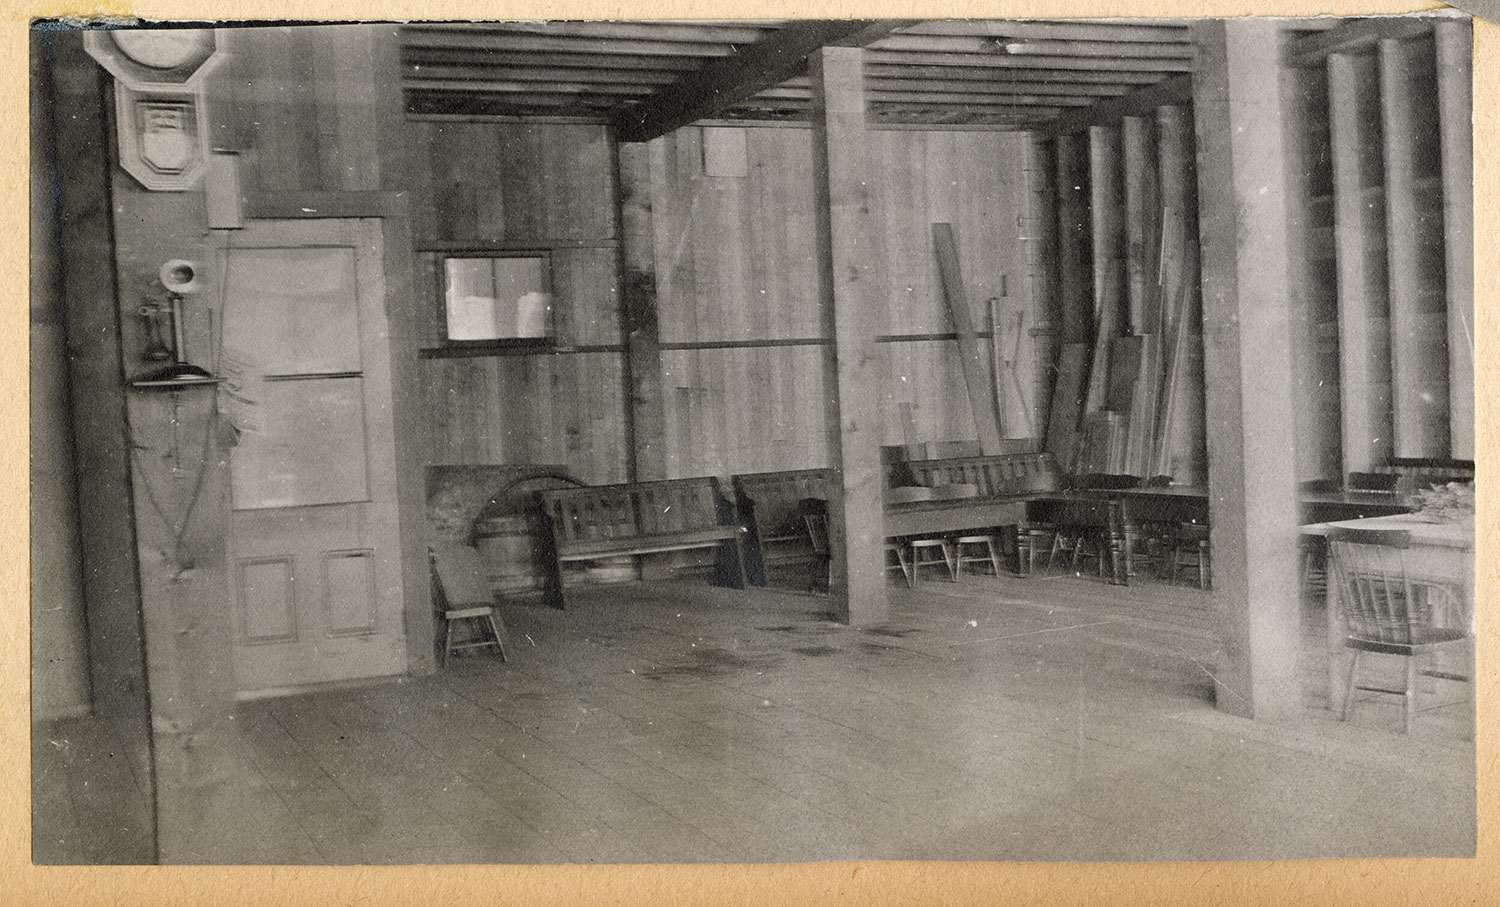 Interior of a wood frame building